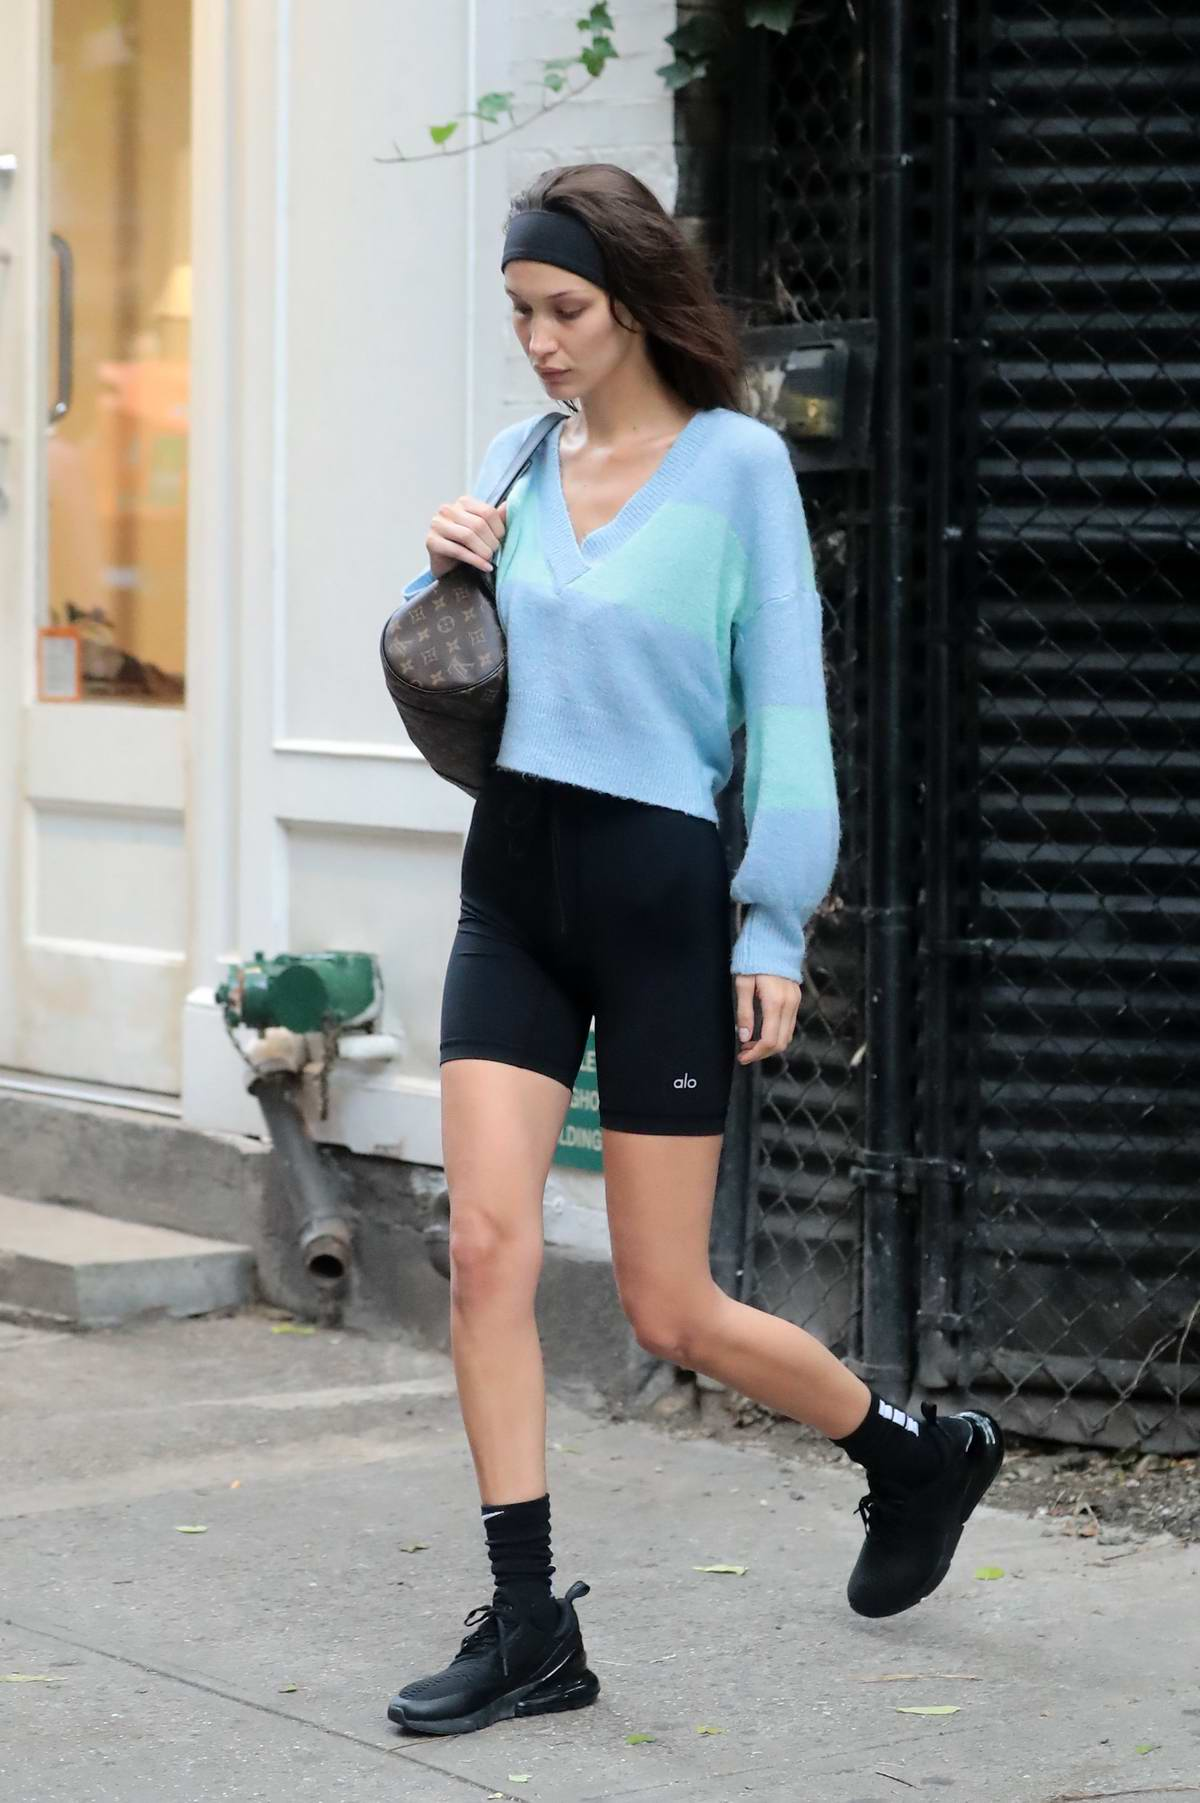 Bella Hadid wore a blue sweater, black biker shorts and Nike trainers as she heads out in New York City